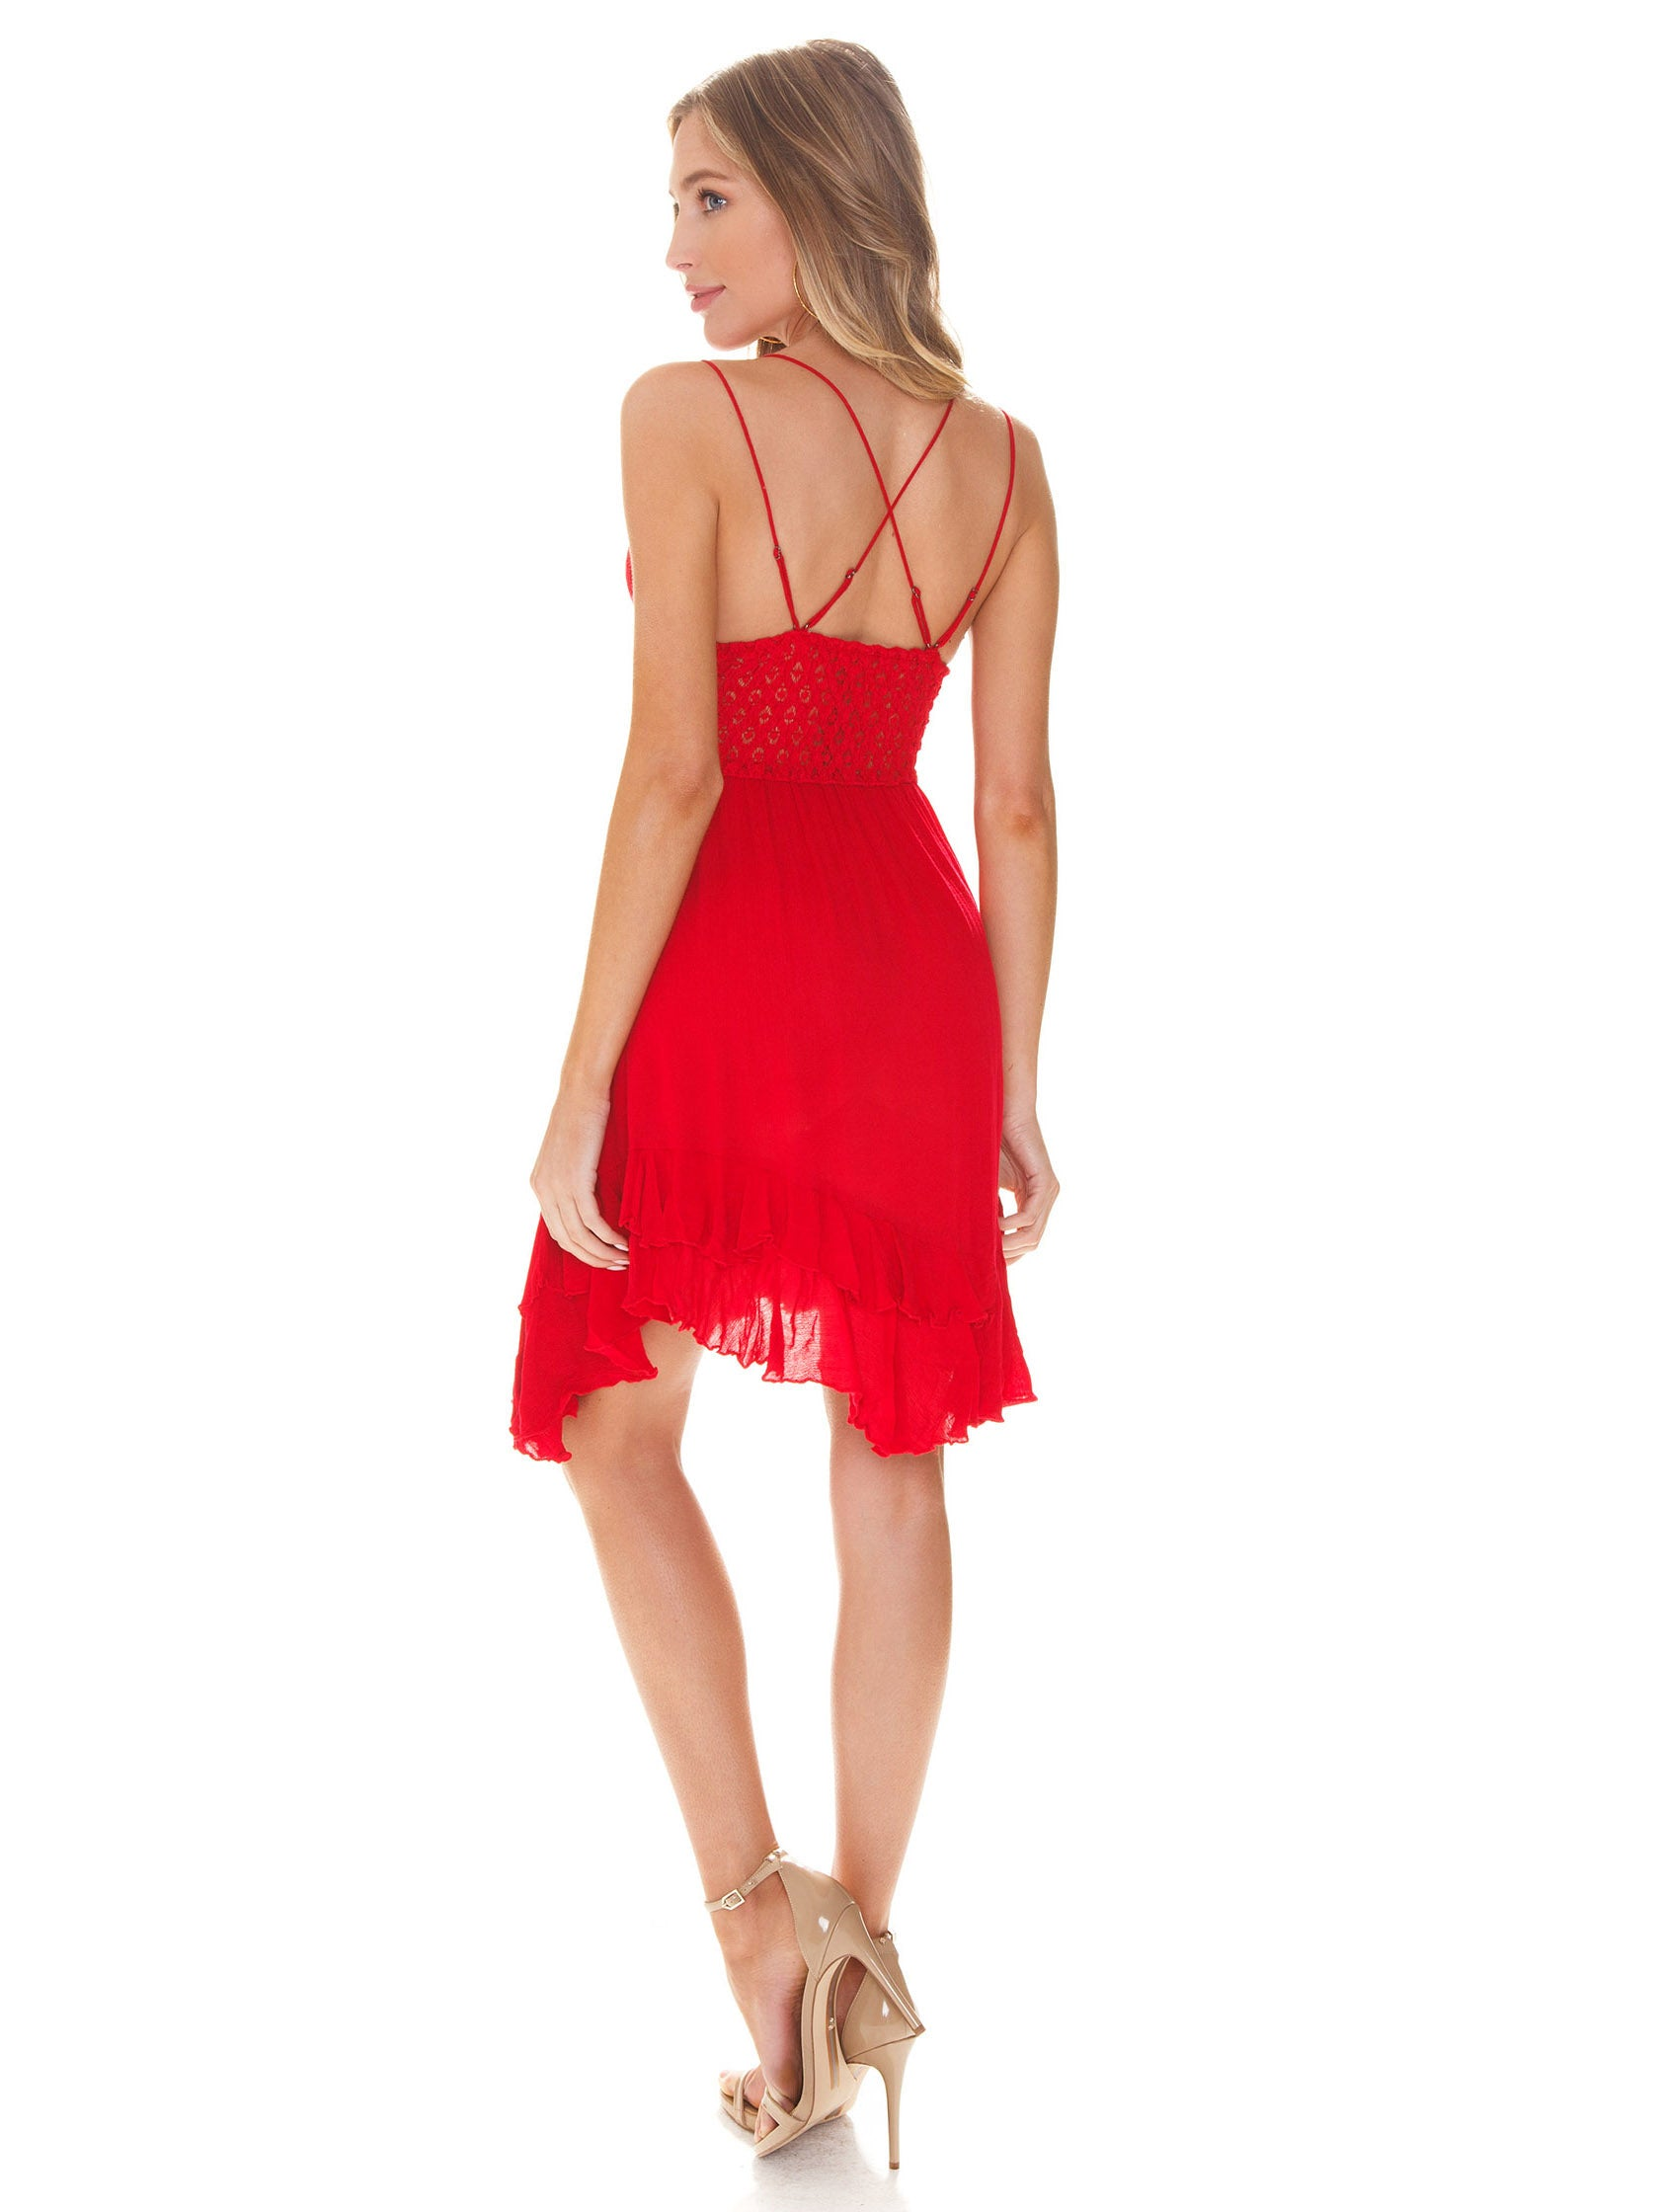 Women wearing a dress rental from Free People called Adella Slip Dress